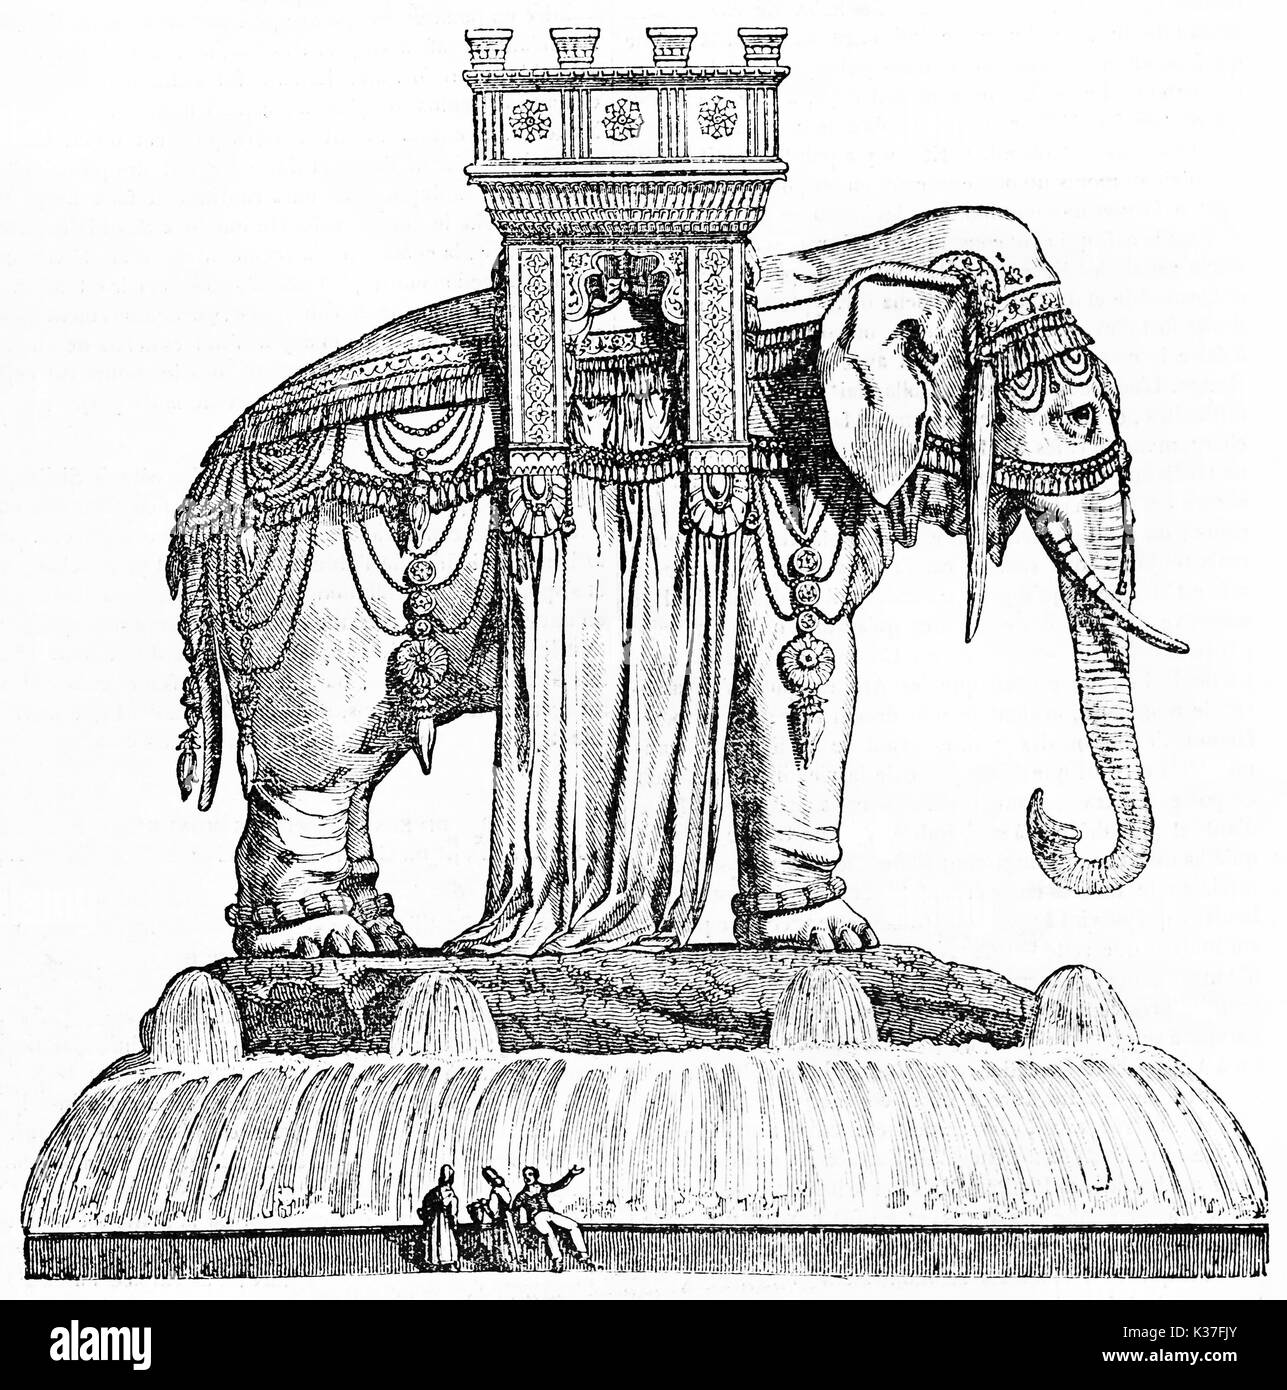 Gigantic monument of a elephant statue for the Bastille square in Paris (unrealized project after Bastille destruction). Old Illustration by unidentified author, on Magasin Pittoresque Paris 1834 - Stock Image